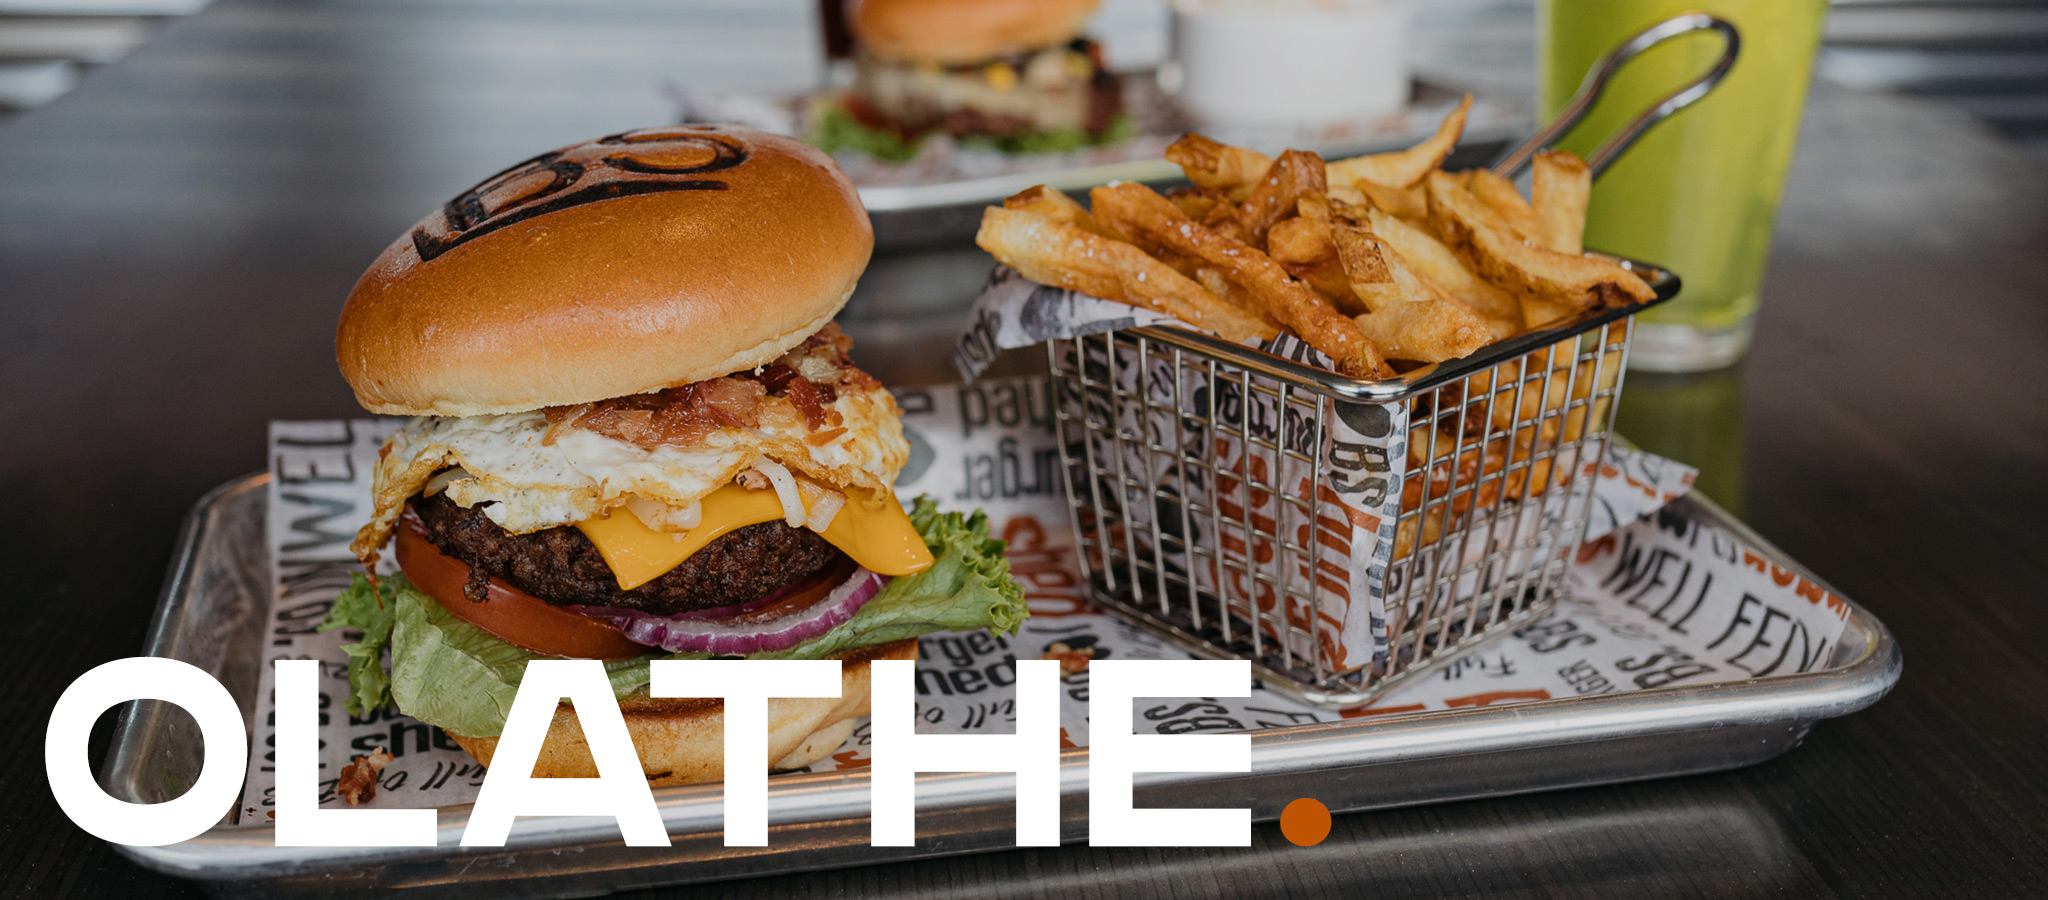 Burger Shed Olathe is now open